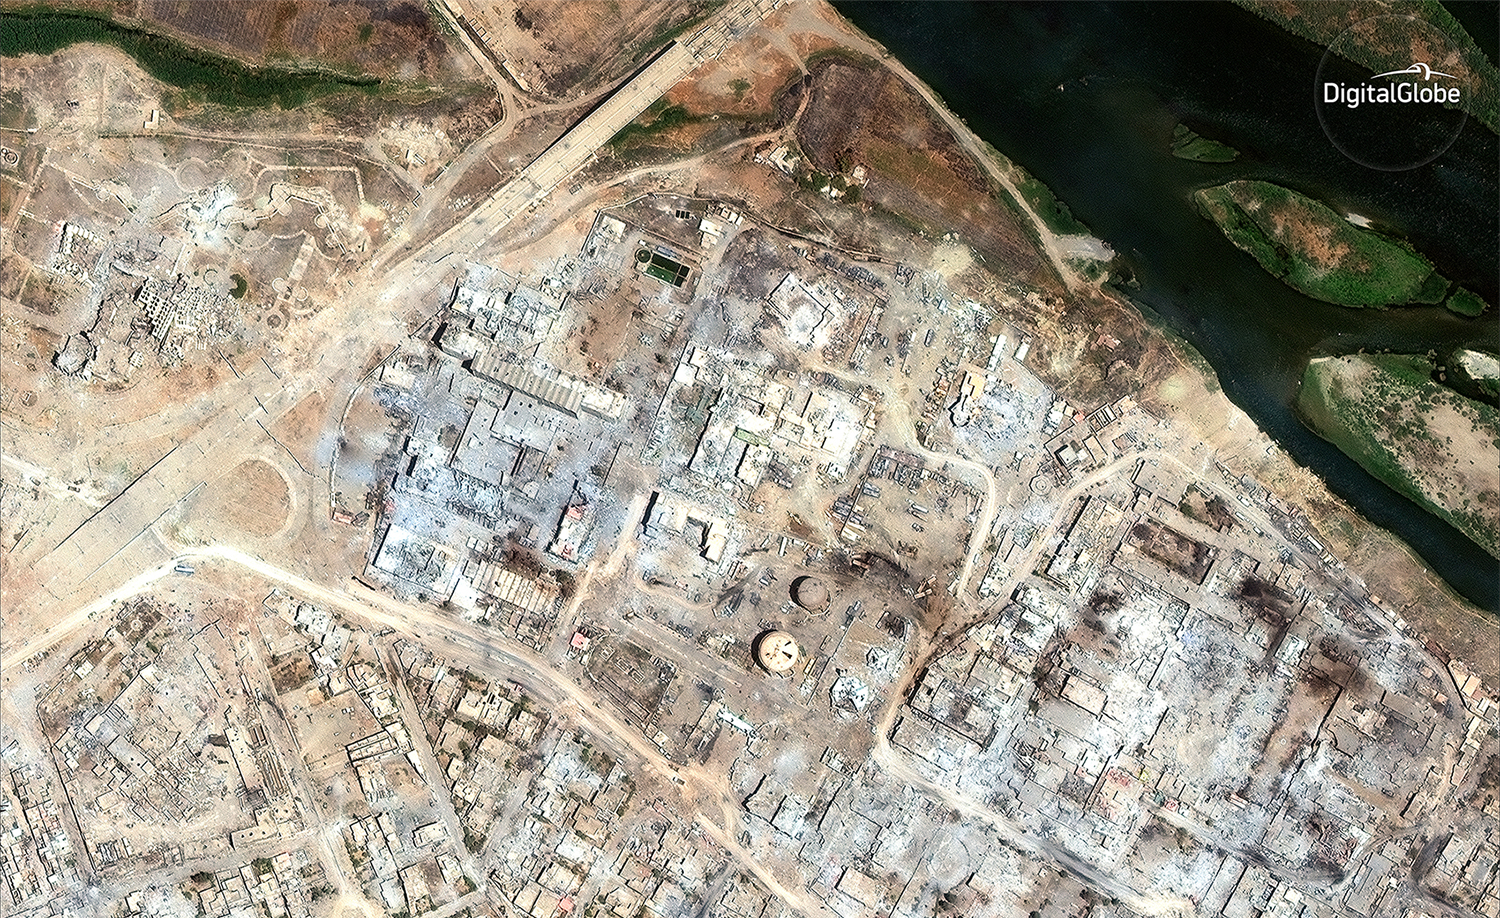 Mosul, Before and After, in Satellite Images